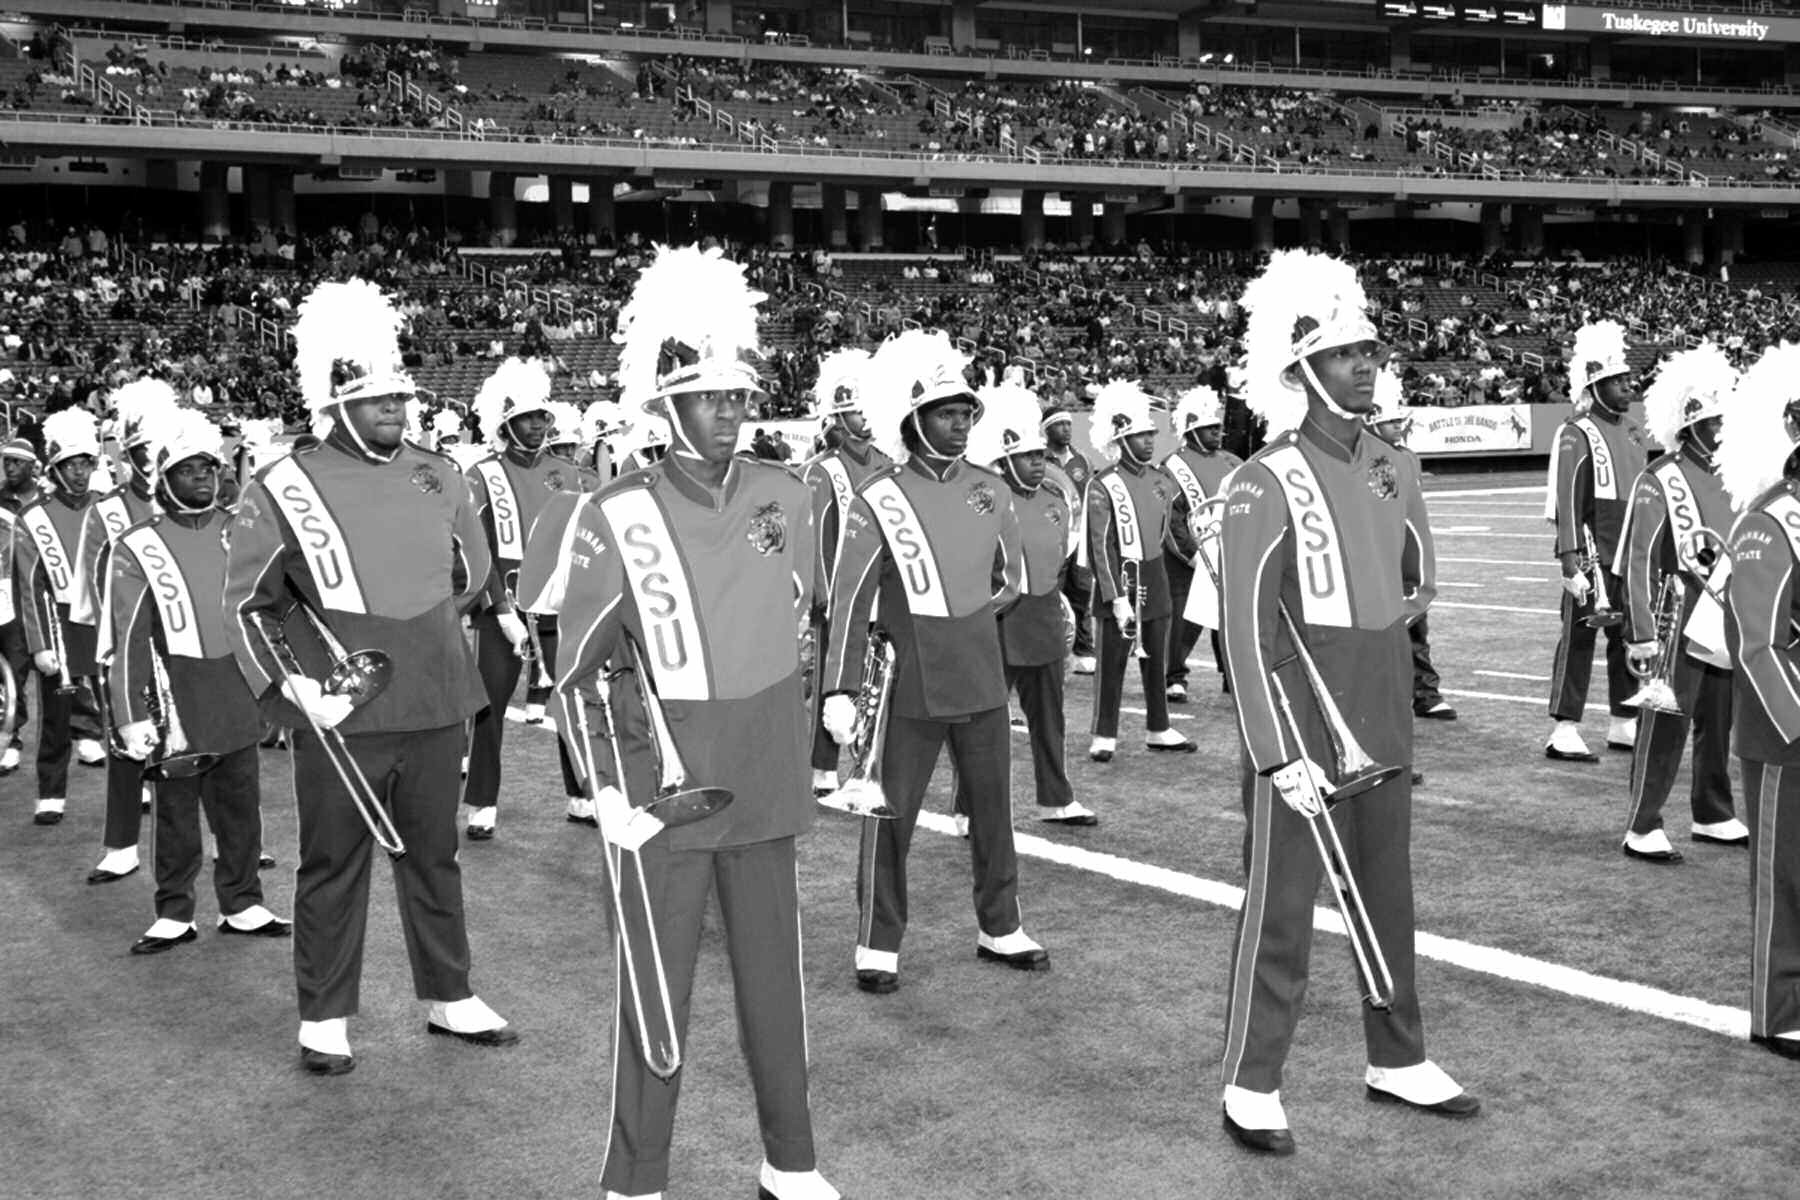 Members of SSU's Marching Band during a past Battle of the Bands Performance